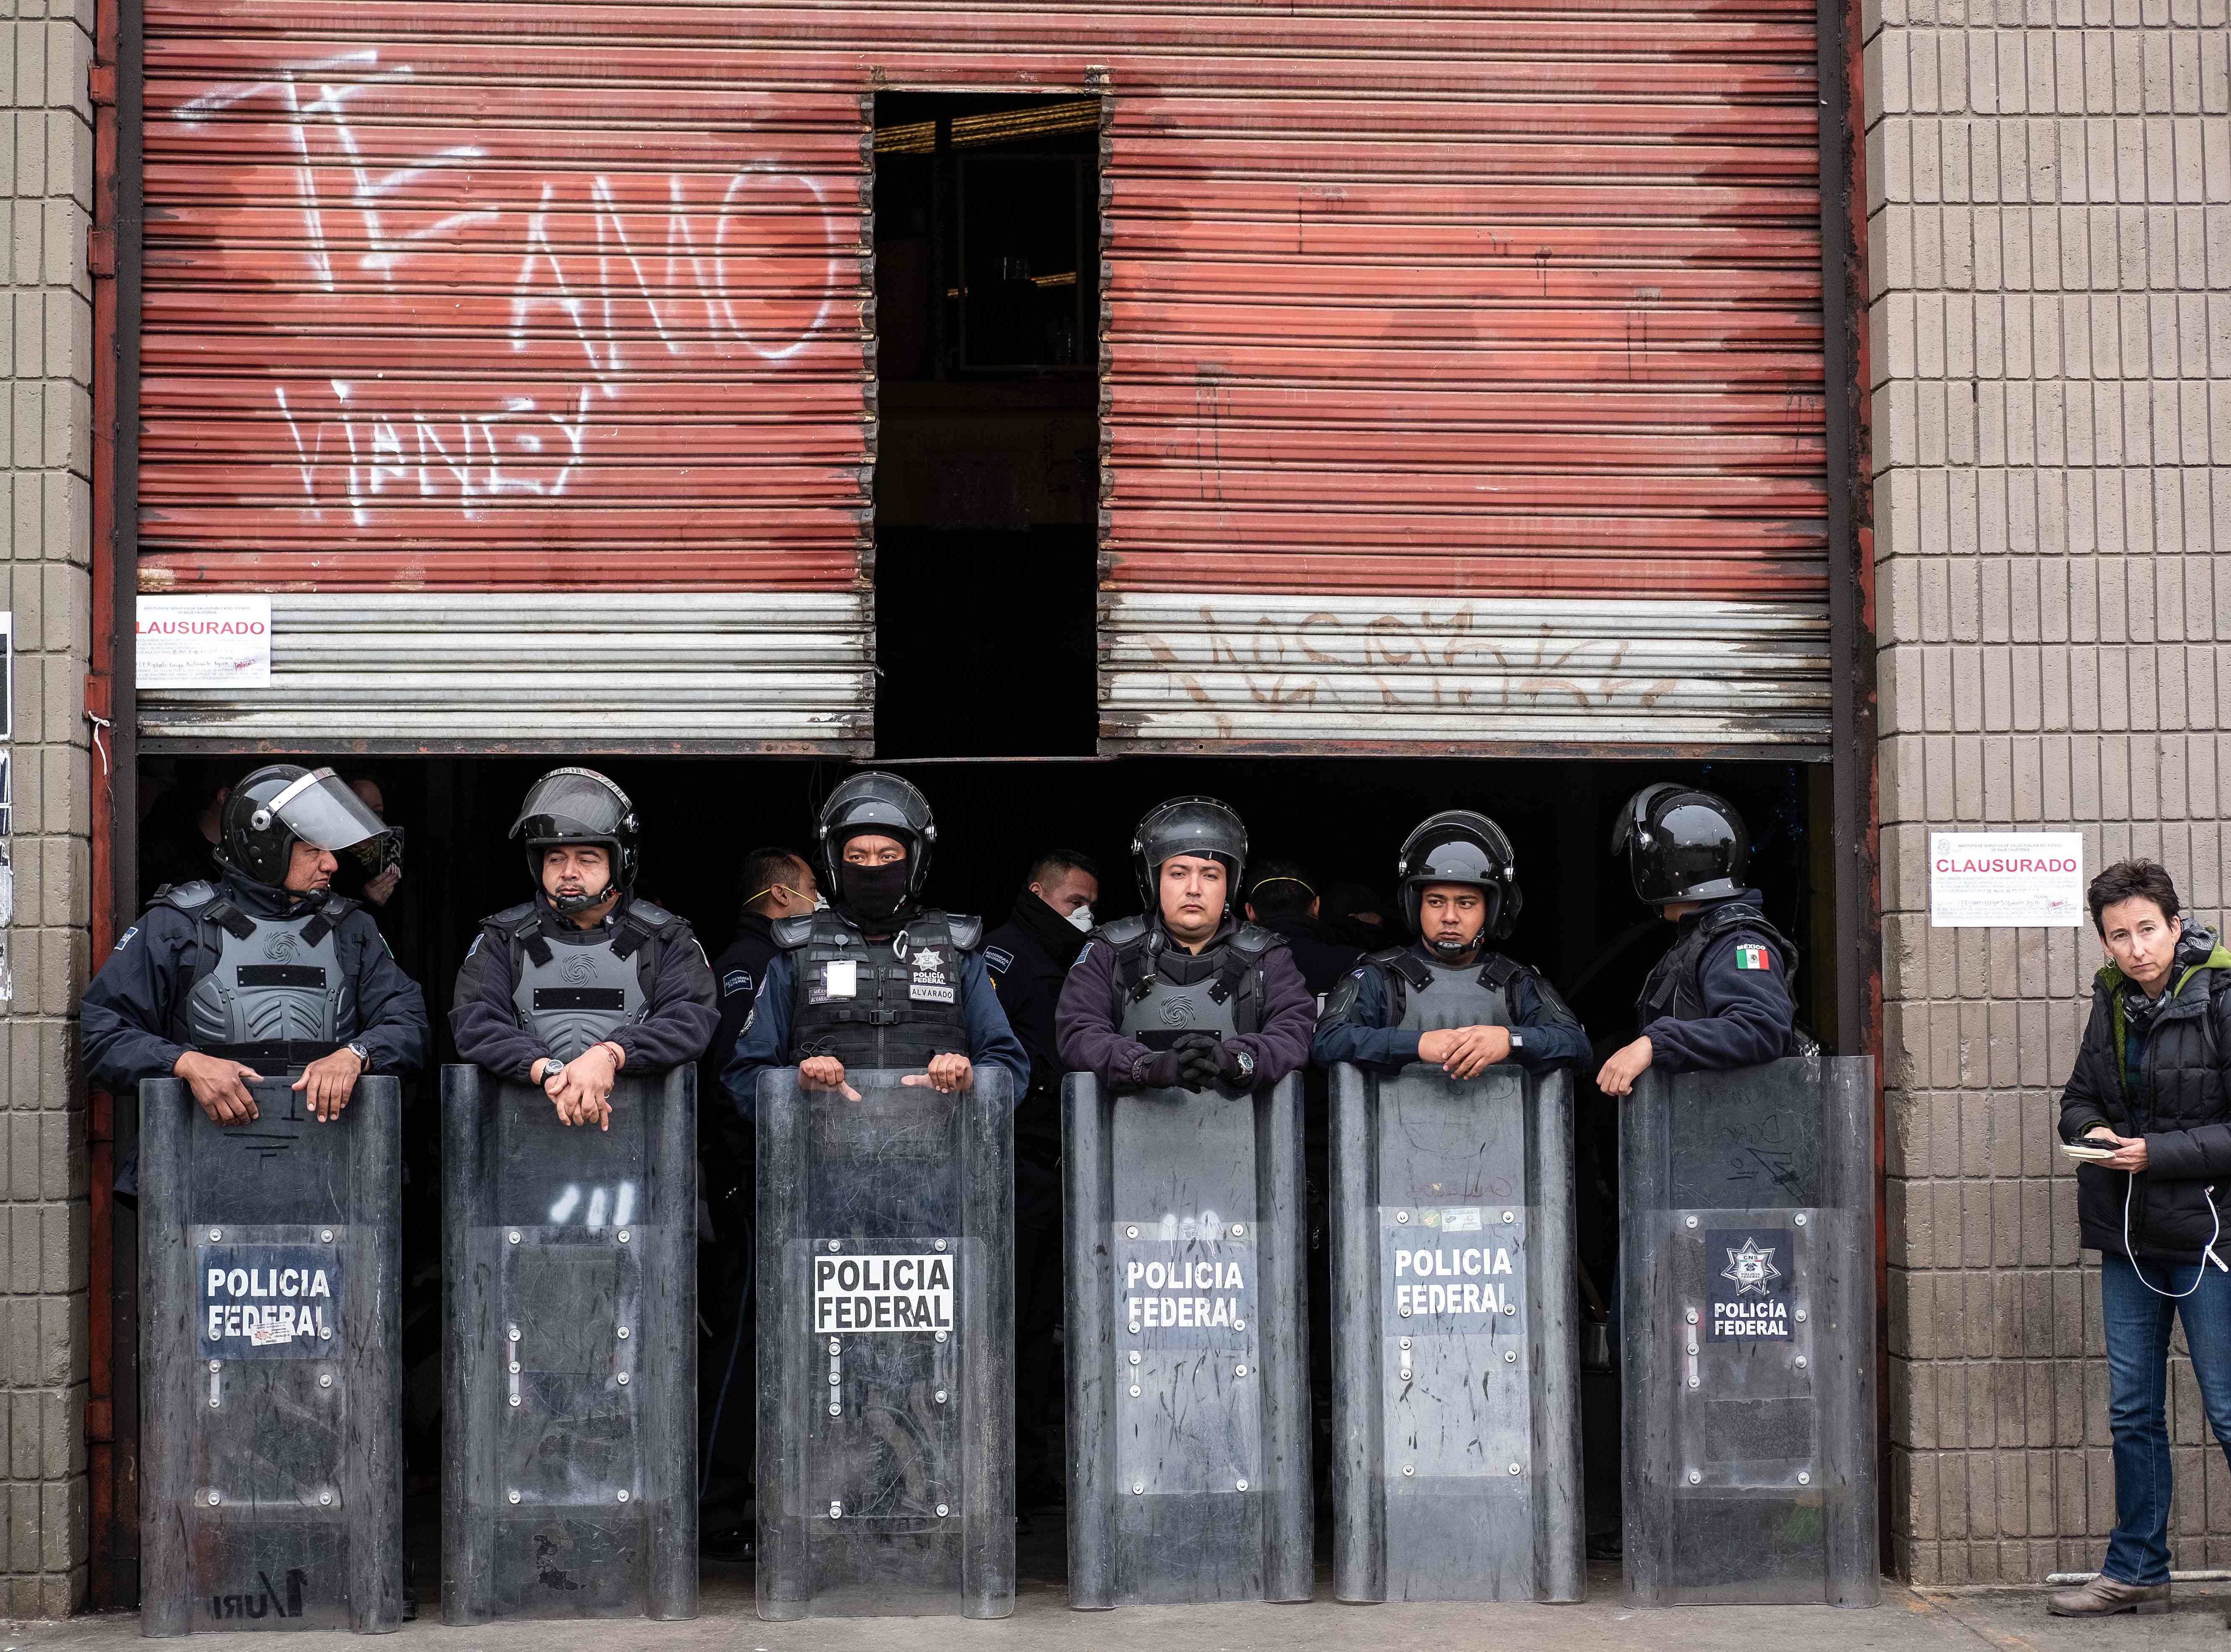 Federal Police officers stand guard at the entrance of a warehouse which was being used as a temporary shelter by Central American migrants wanting to reach the United States, in downtown Tijuana, Baja California State, Mexico, on Jan. 5, 2019. After a day long standoff with Federal Police, dozens of migrants who are to be relocated finally left the warehouse which authorities ordered to be closed due to sanitary conditions.